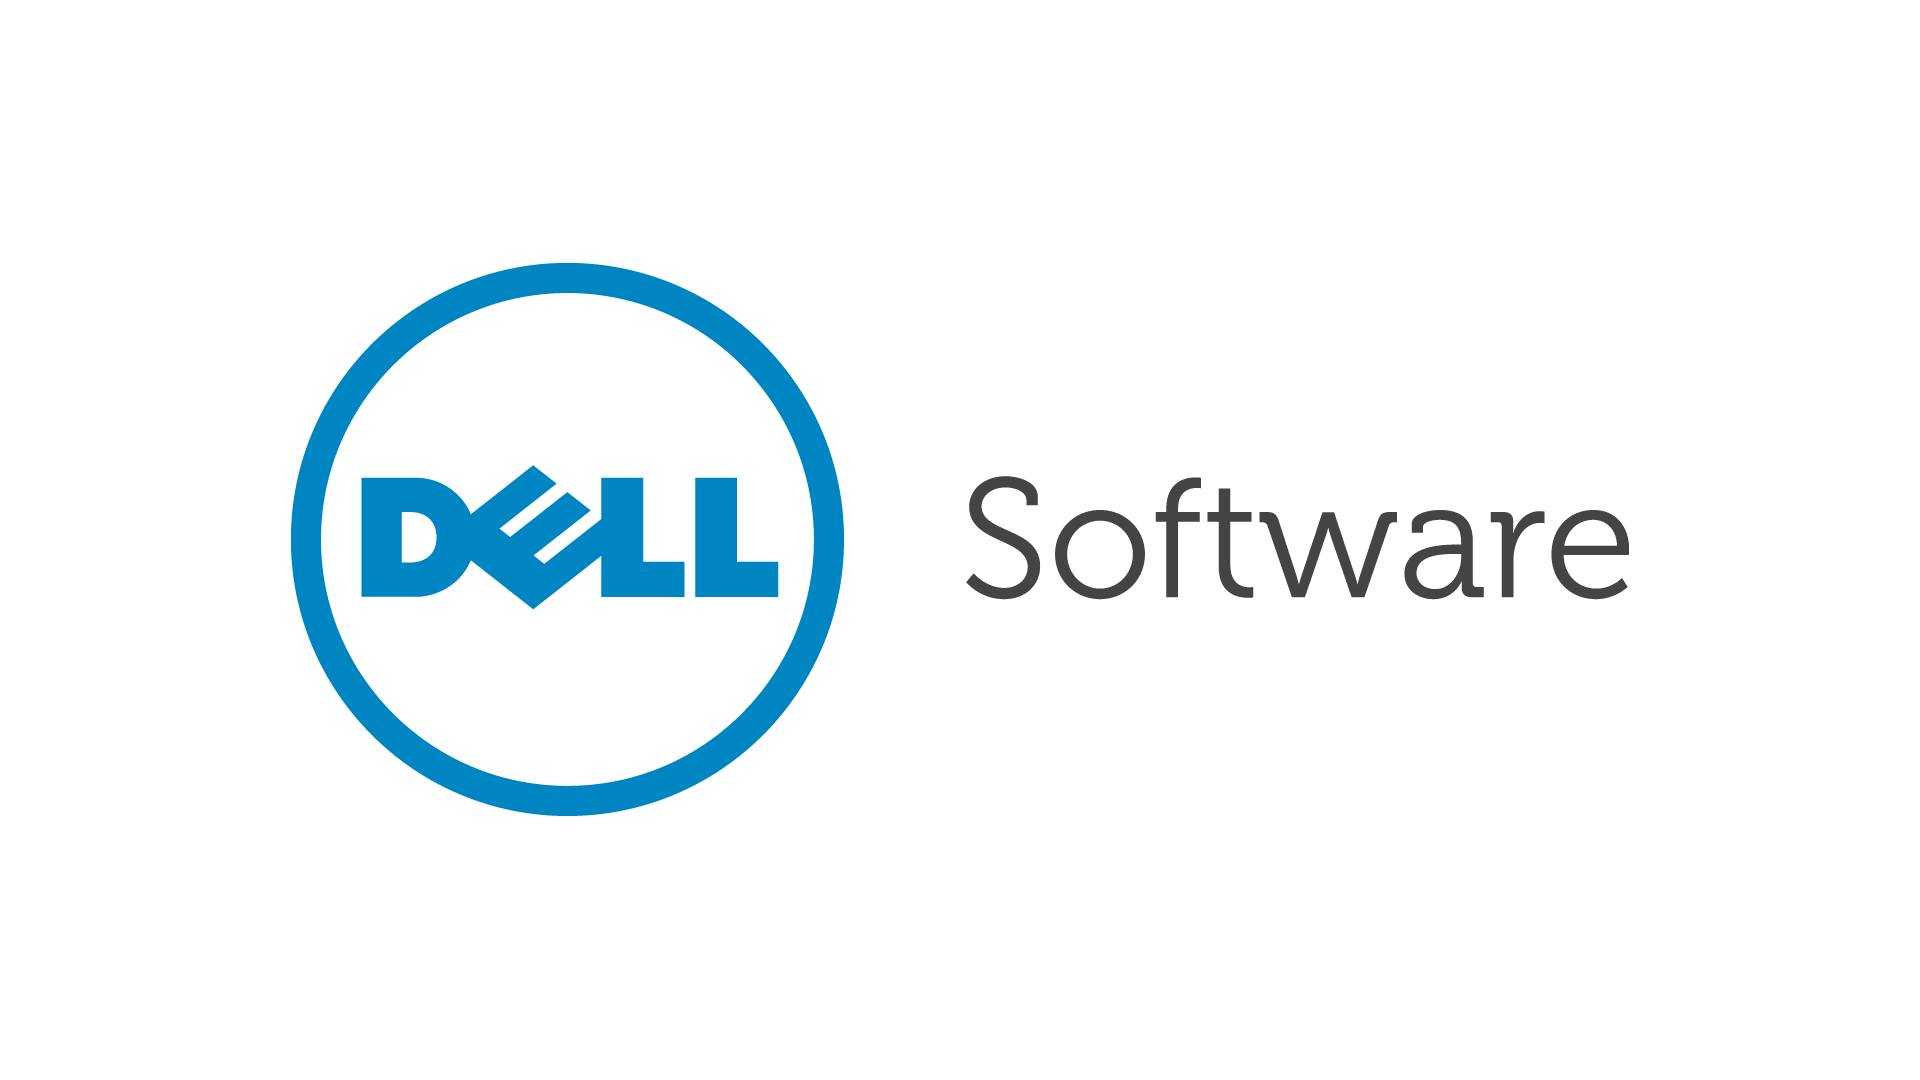 Dell Software_Blue